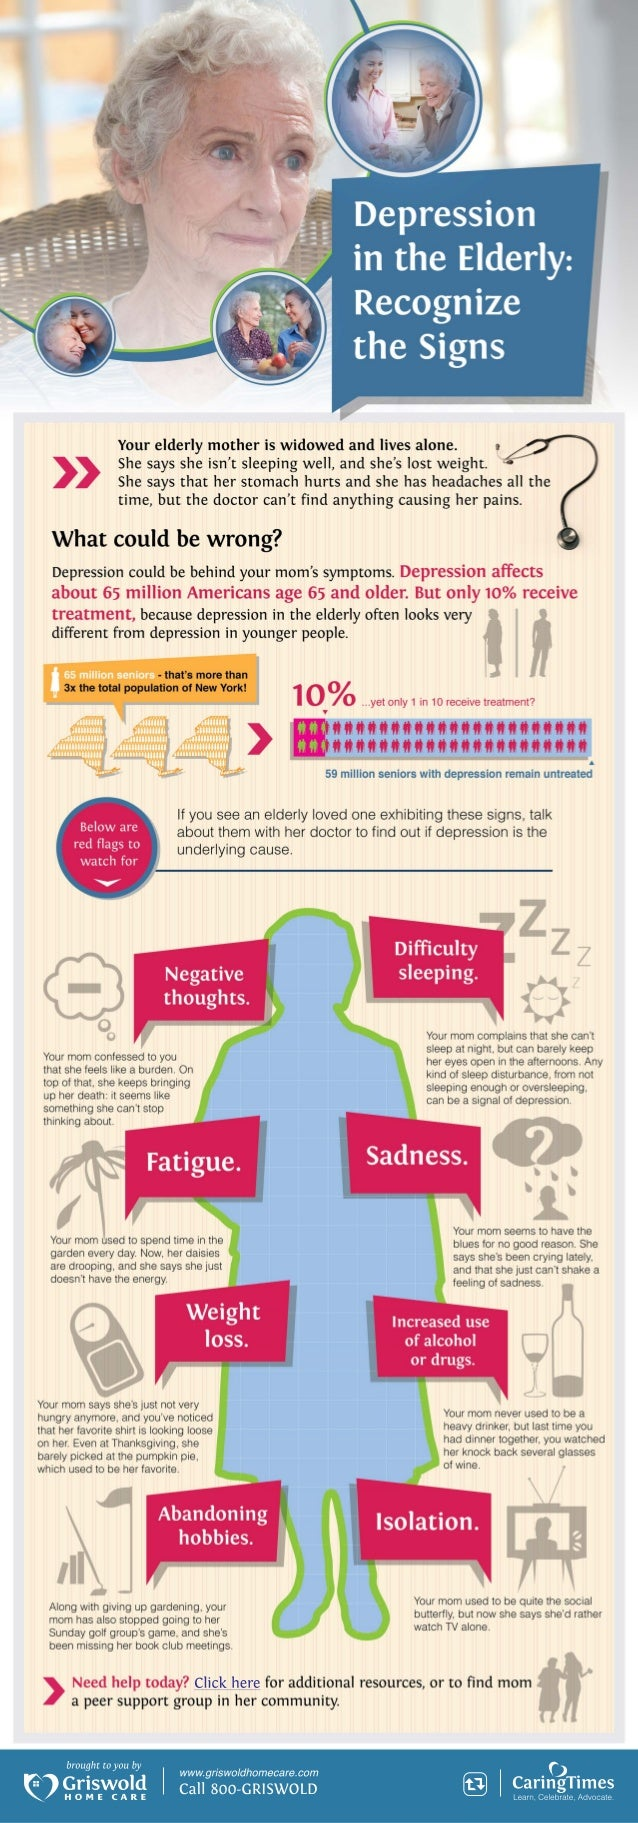 [INFOGRAPHIC] Depression in the Elderly: Recognize the Signs